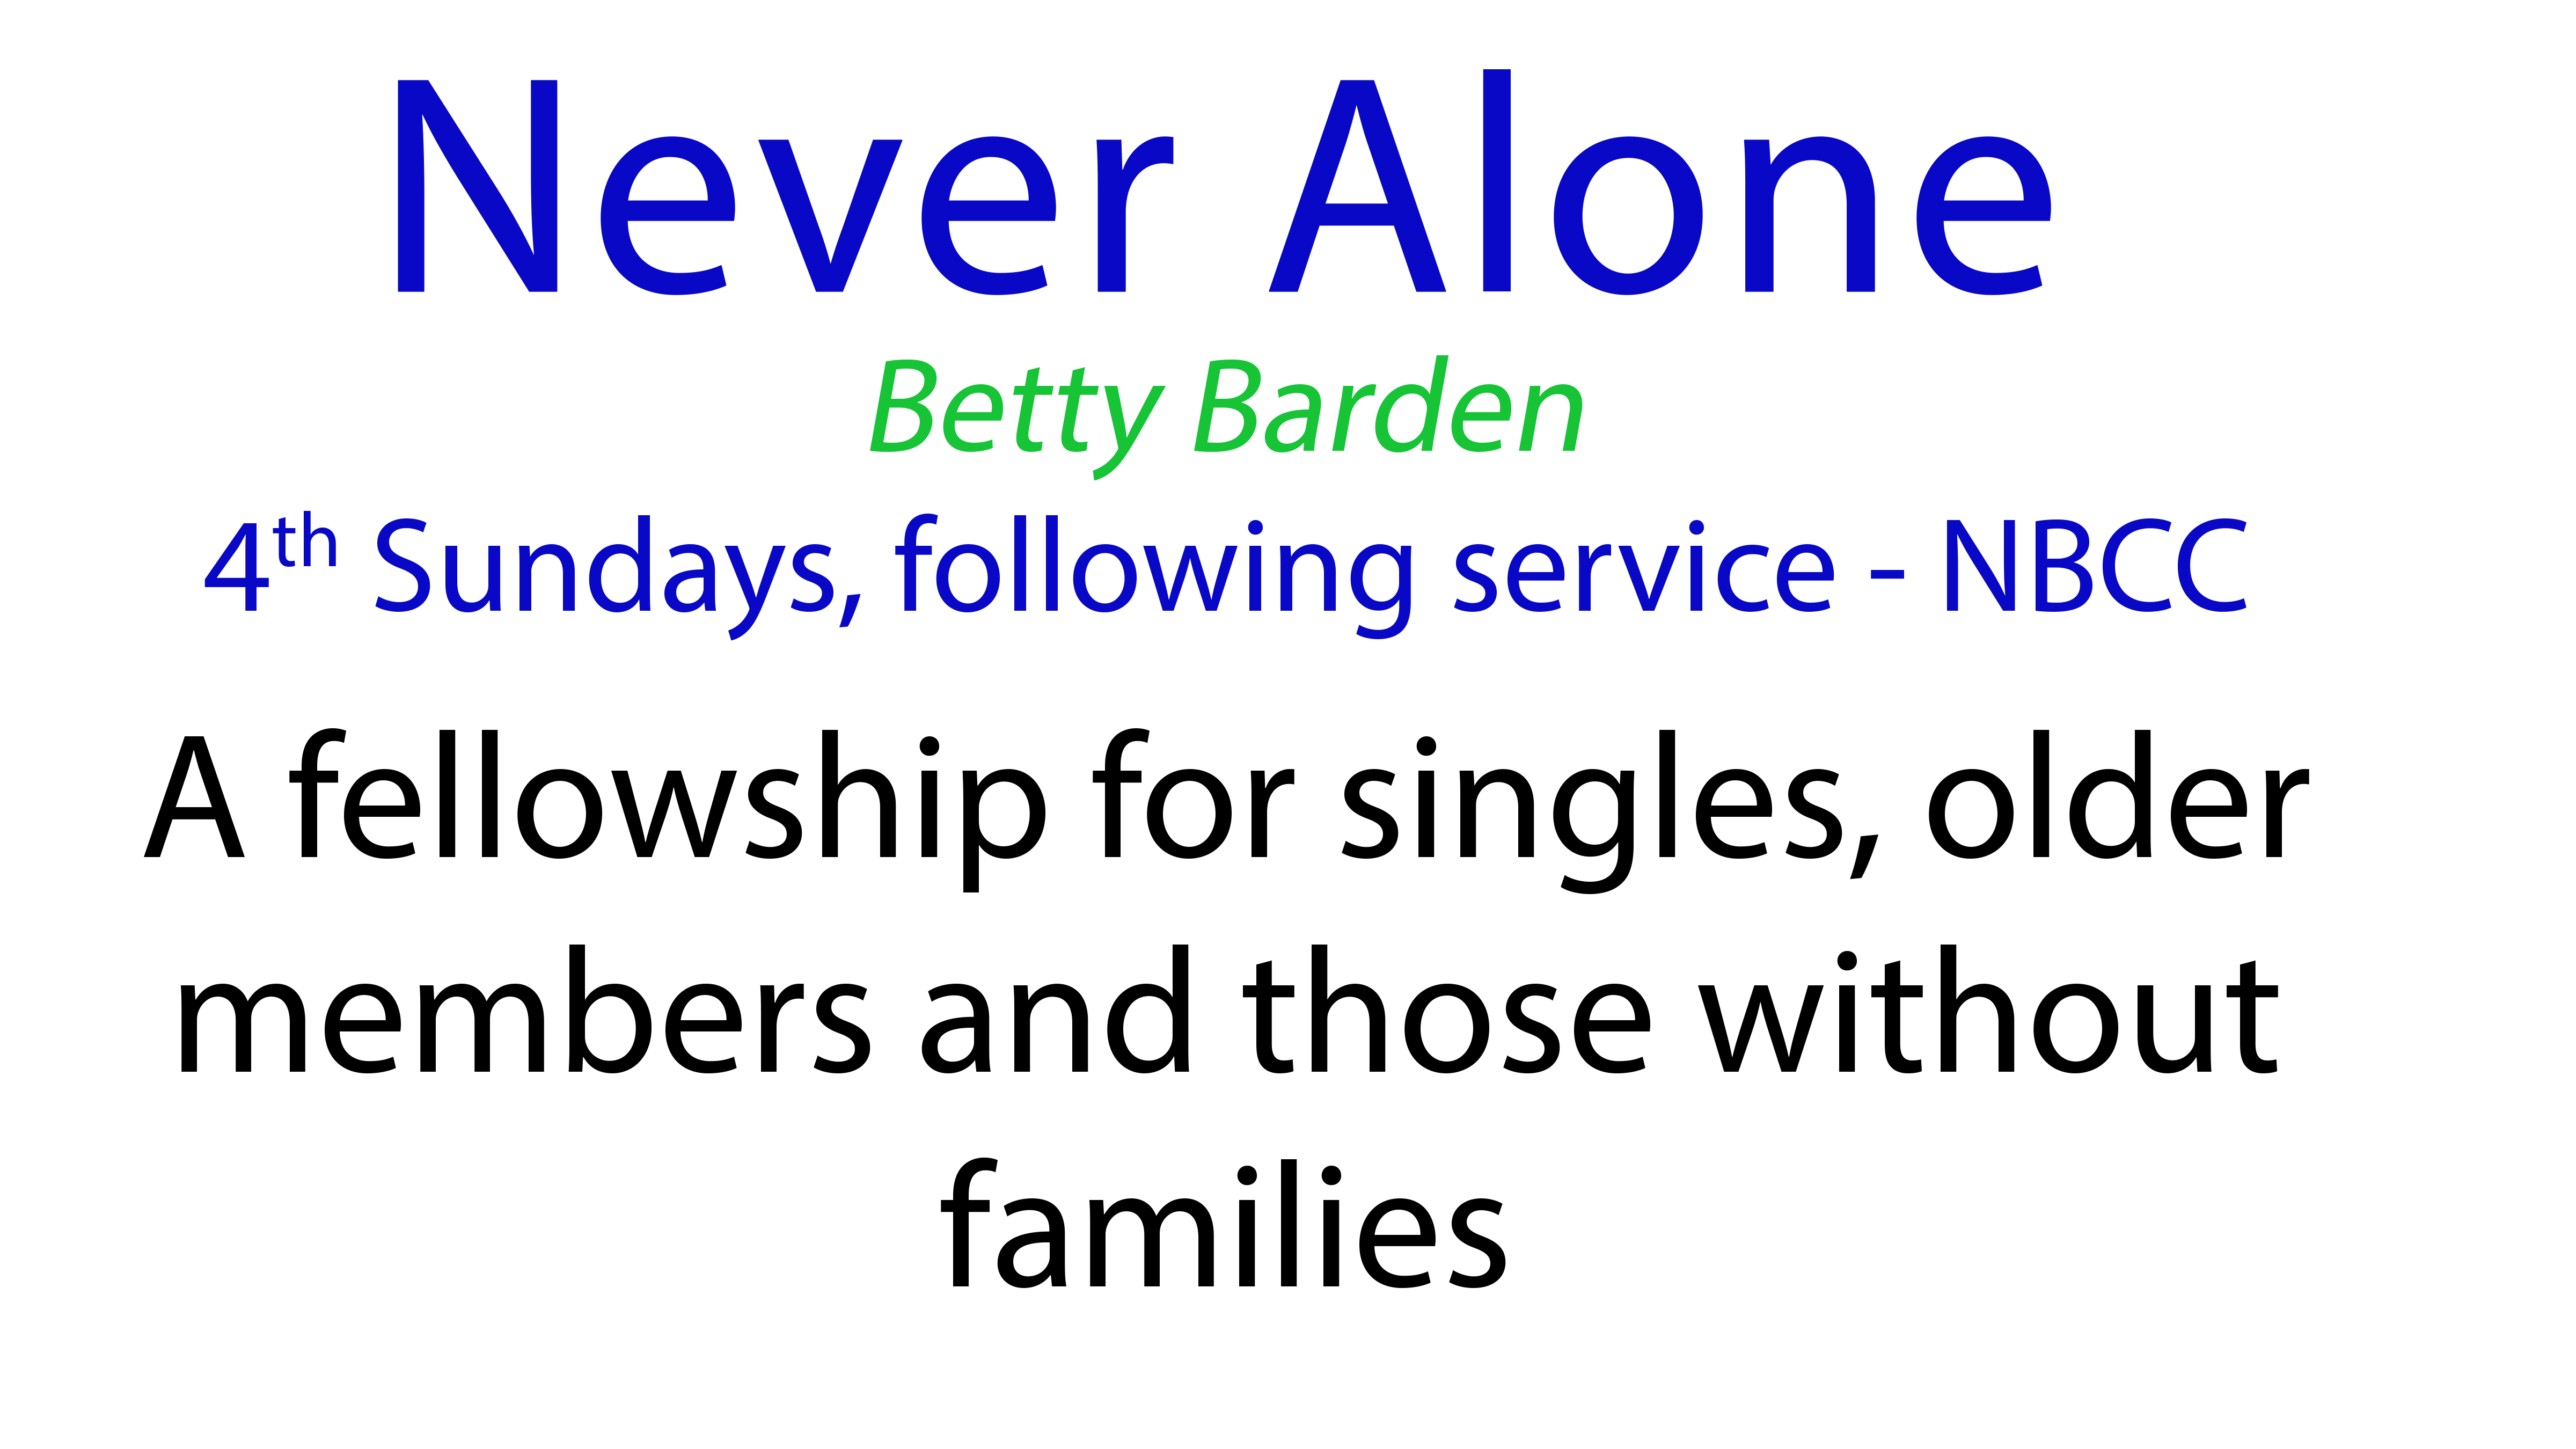 /Images/newbeginningschurch/site/images/groups/never_alone.png